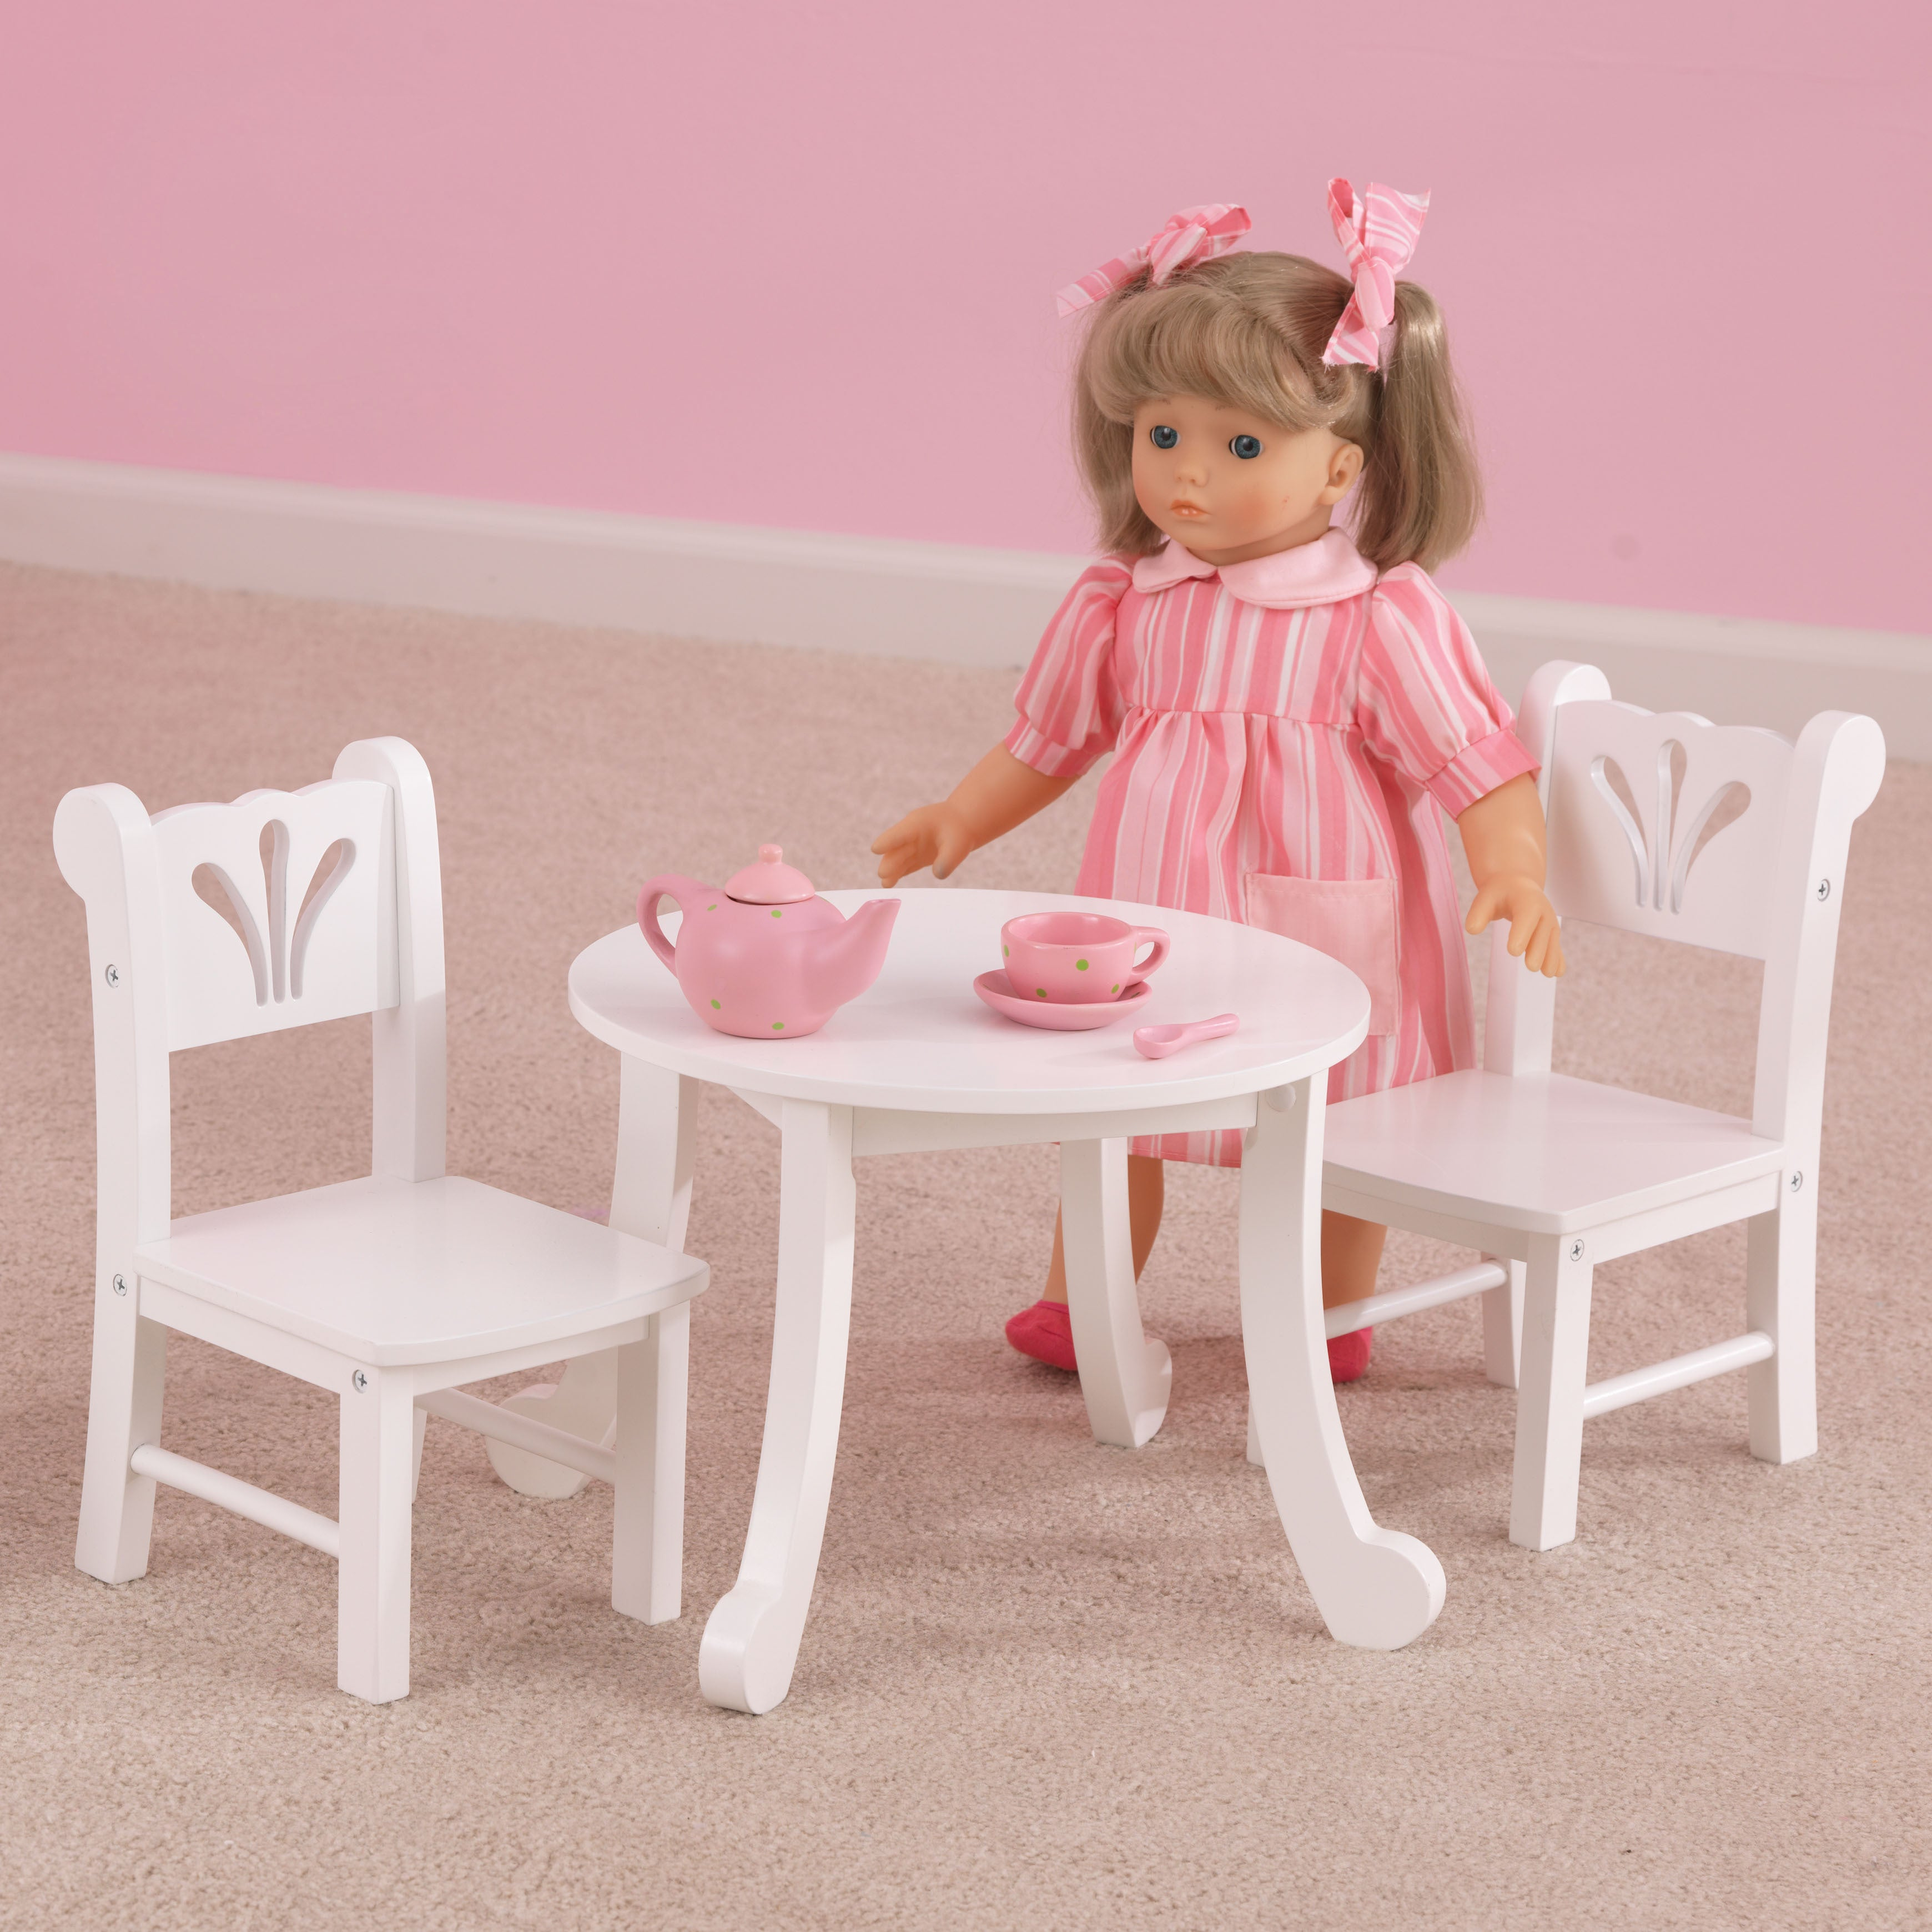 Marvelous KidKraft Lil Doll Table And Chair Play Set   Free Shipping On Orders Over  $45   Overstock   14668193